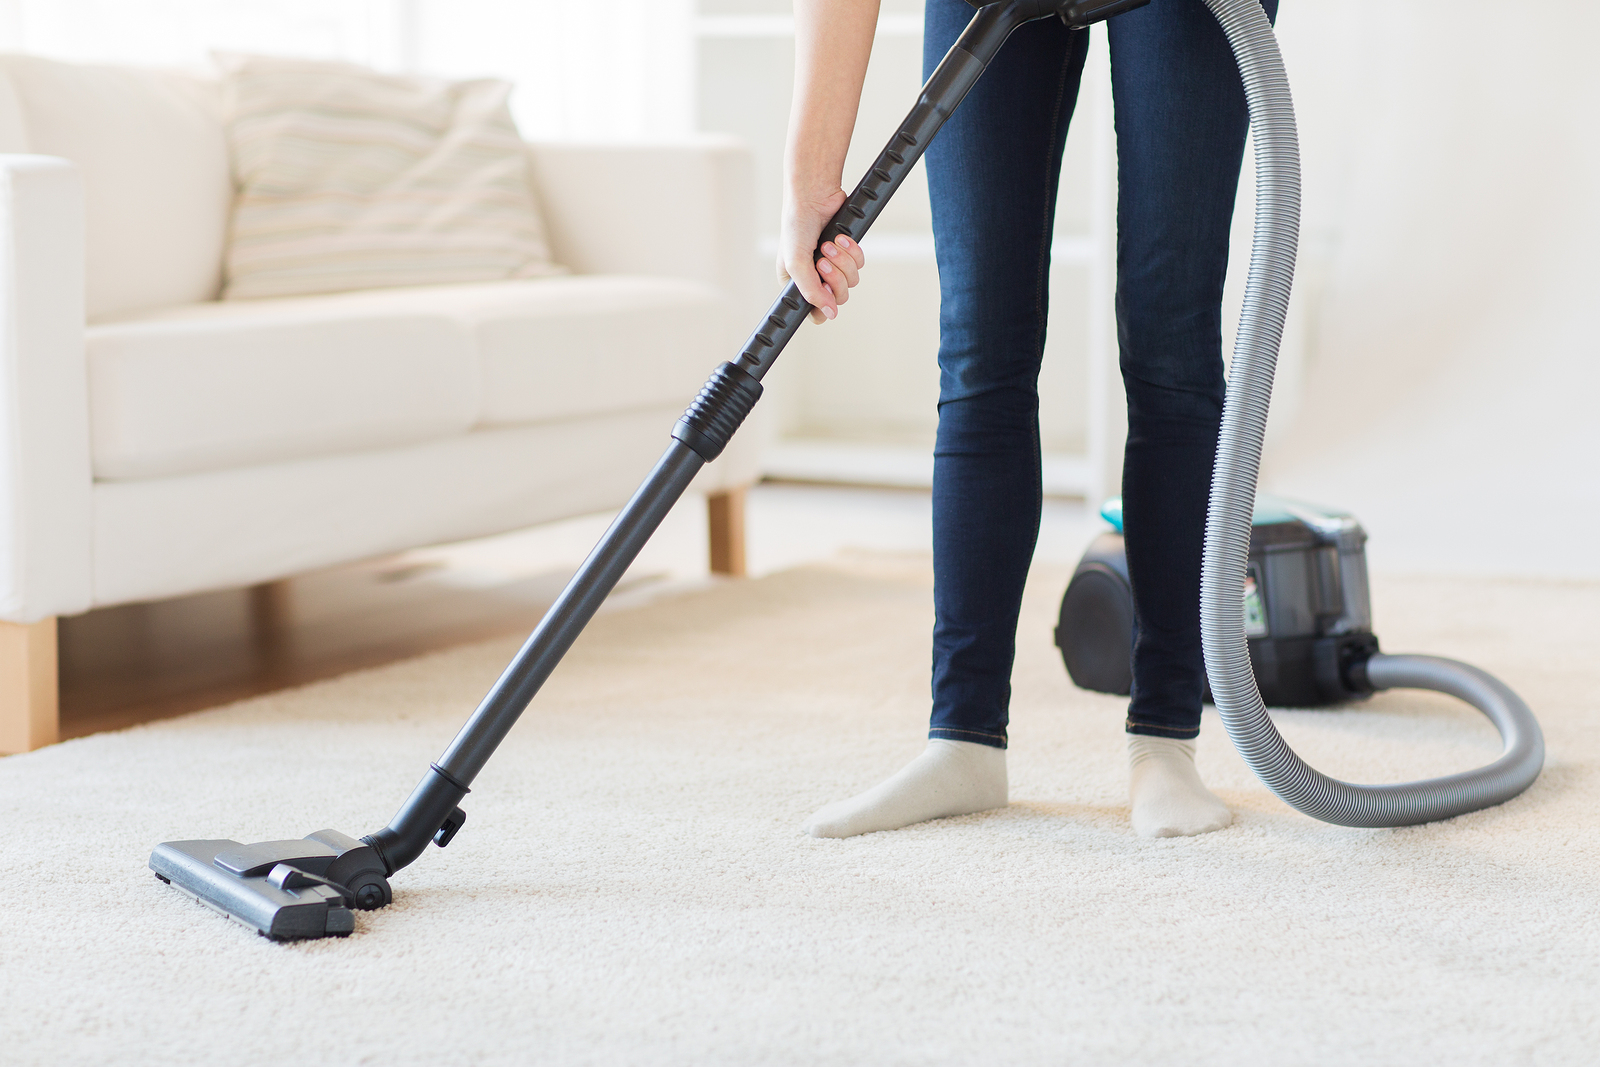 Woman with legs vacuum cleaner cleaning carpet at home